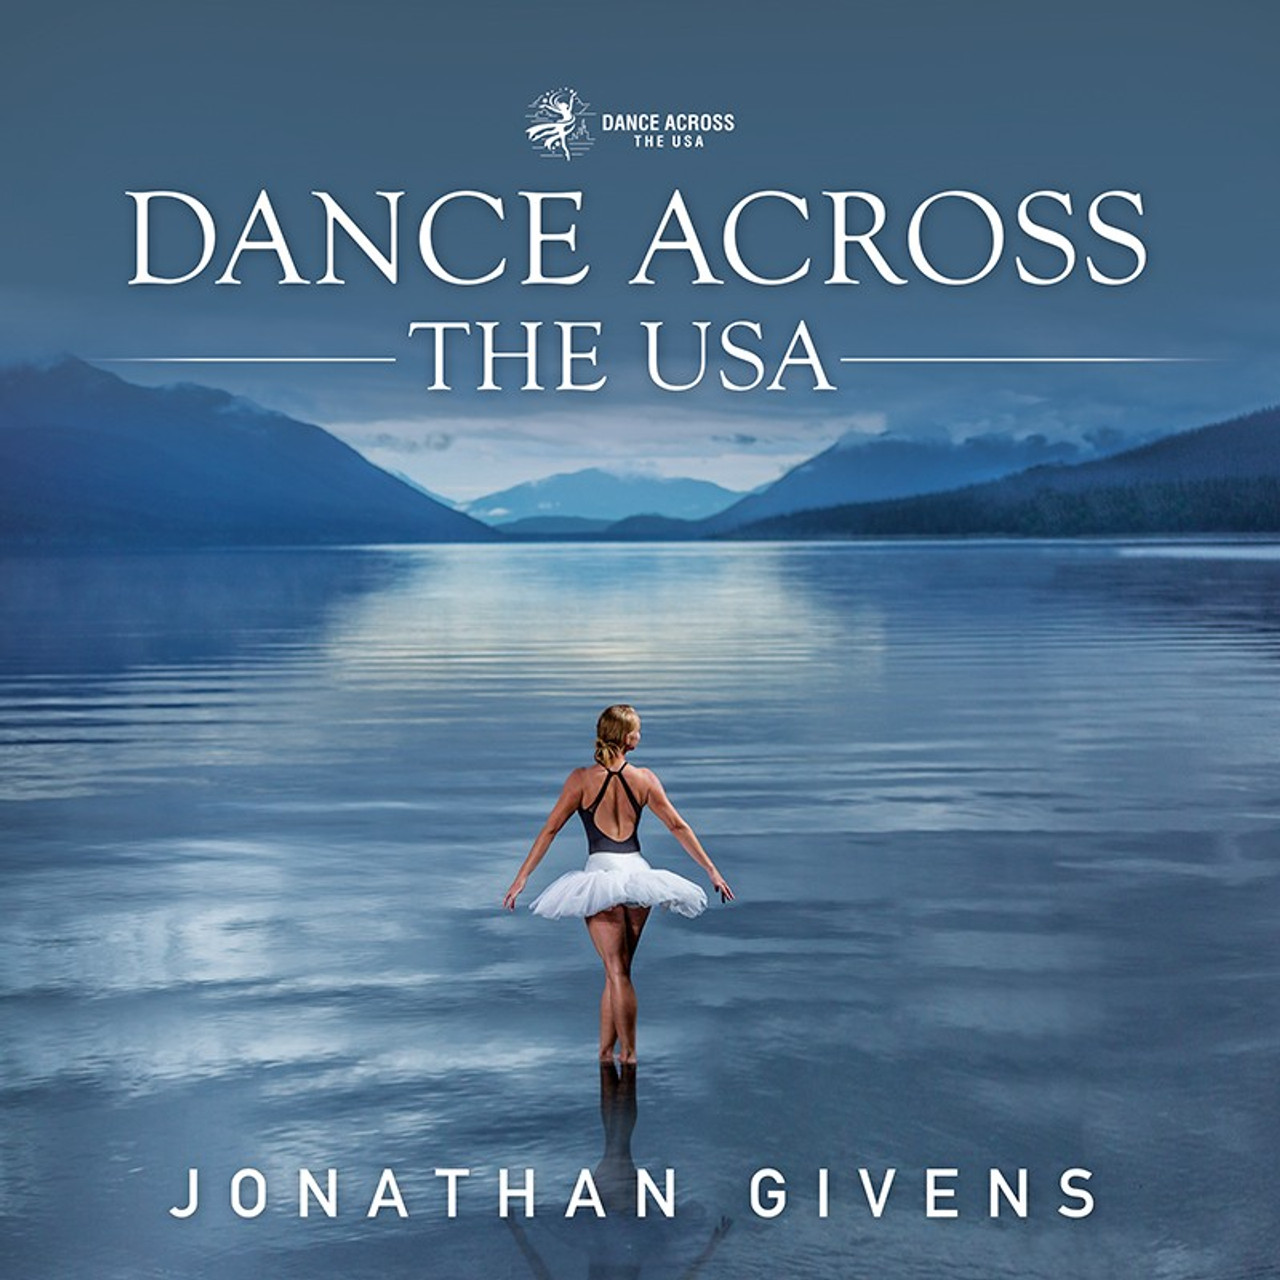 Dance Across the USA